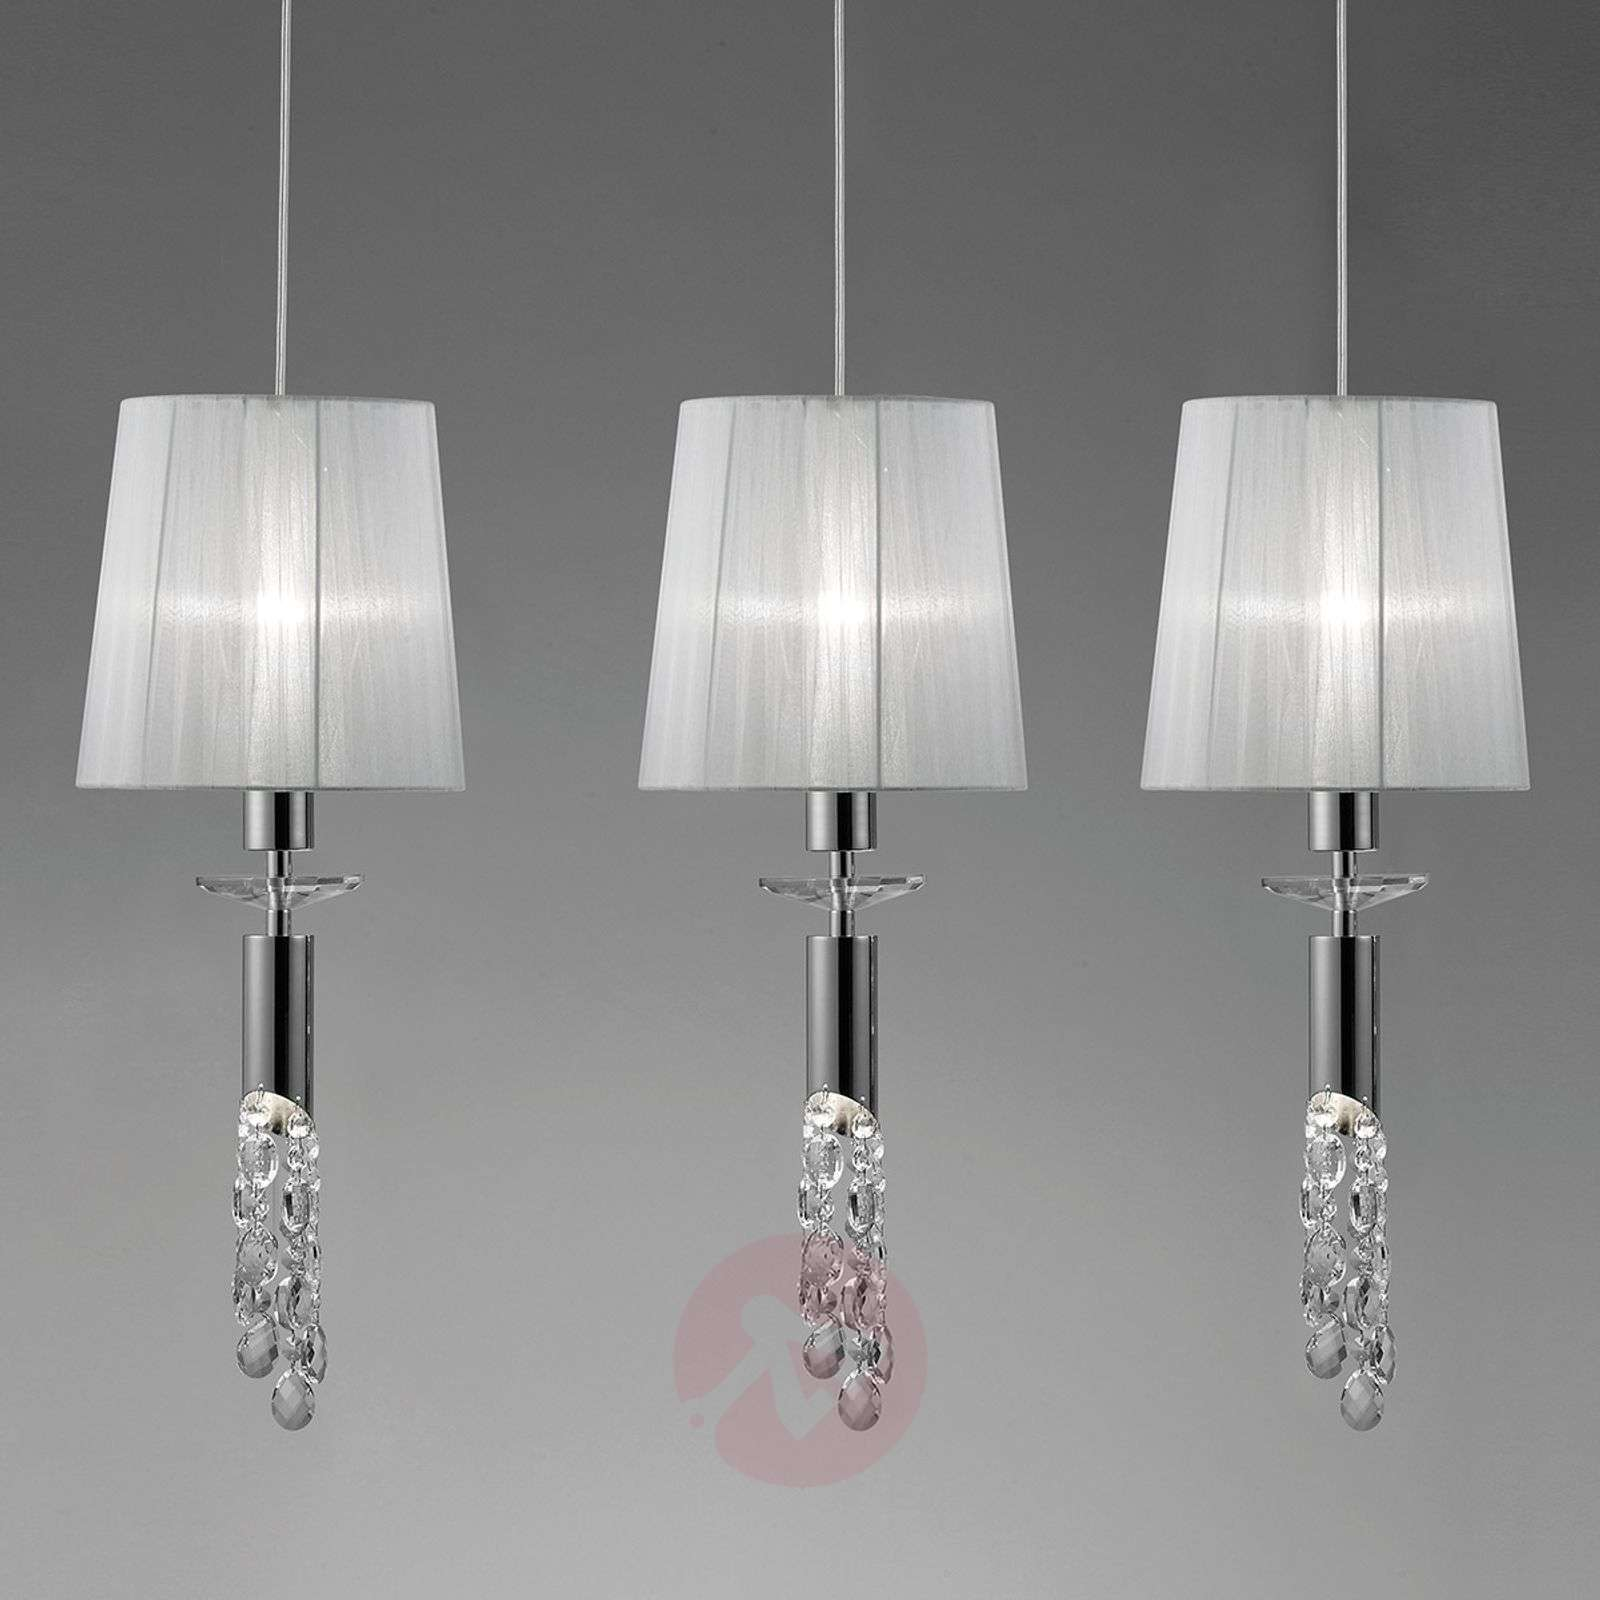 suspension originale lilja en cristal 3 lampes. Black Bedroom Furniture Sets. Home Design Ideas